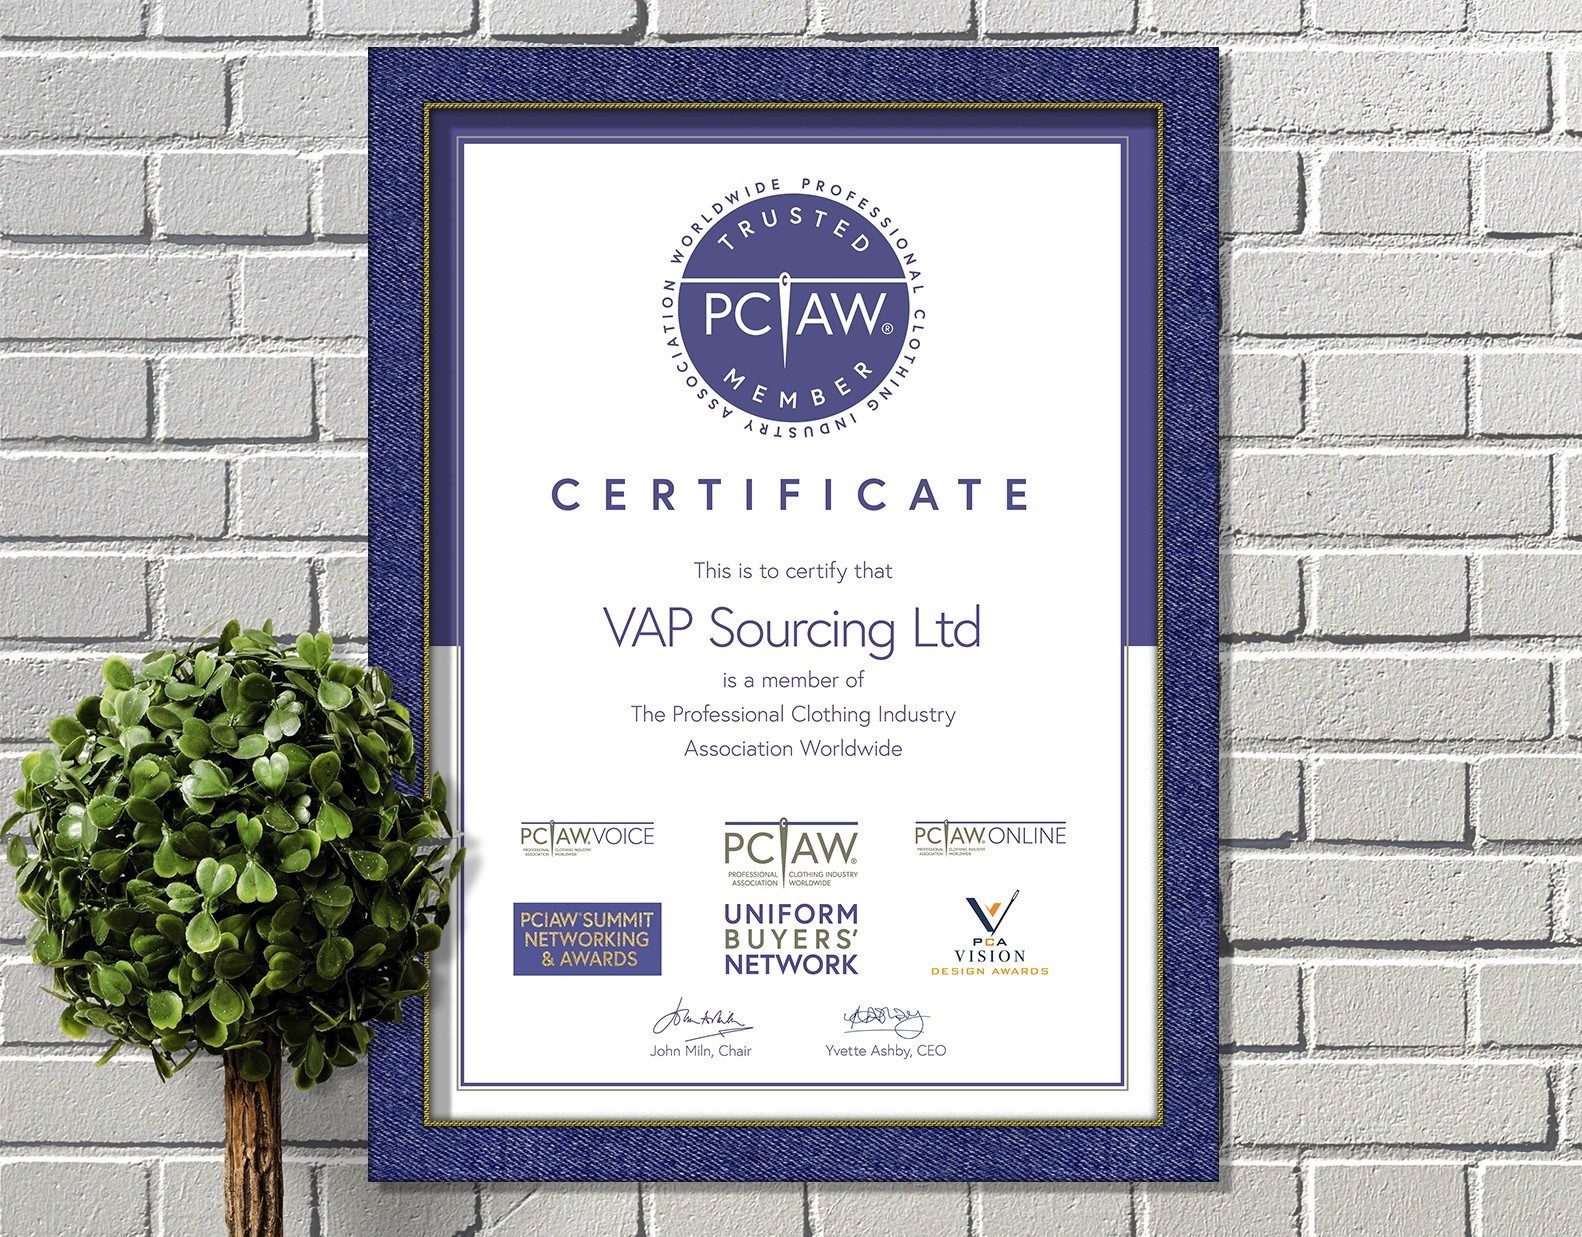 The PCIAW® is proud to have VAP Sourcing Ltd. as a PCIAW® Trusted Member.